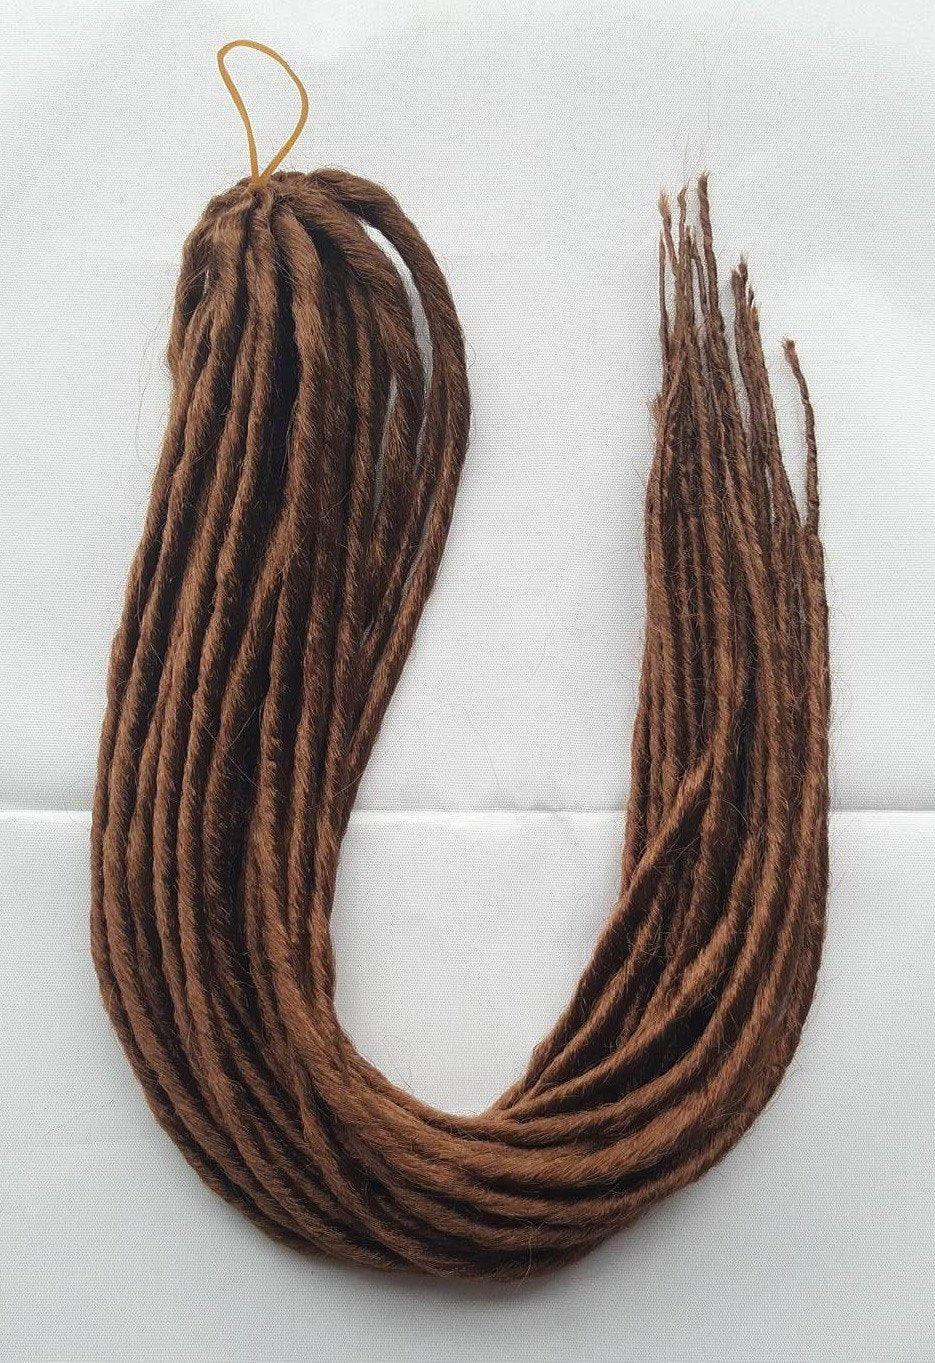 Elysee Star - #30 Reddish Brown Synthetische Dreadlocks (Doppelendend) (10 Pack)